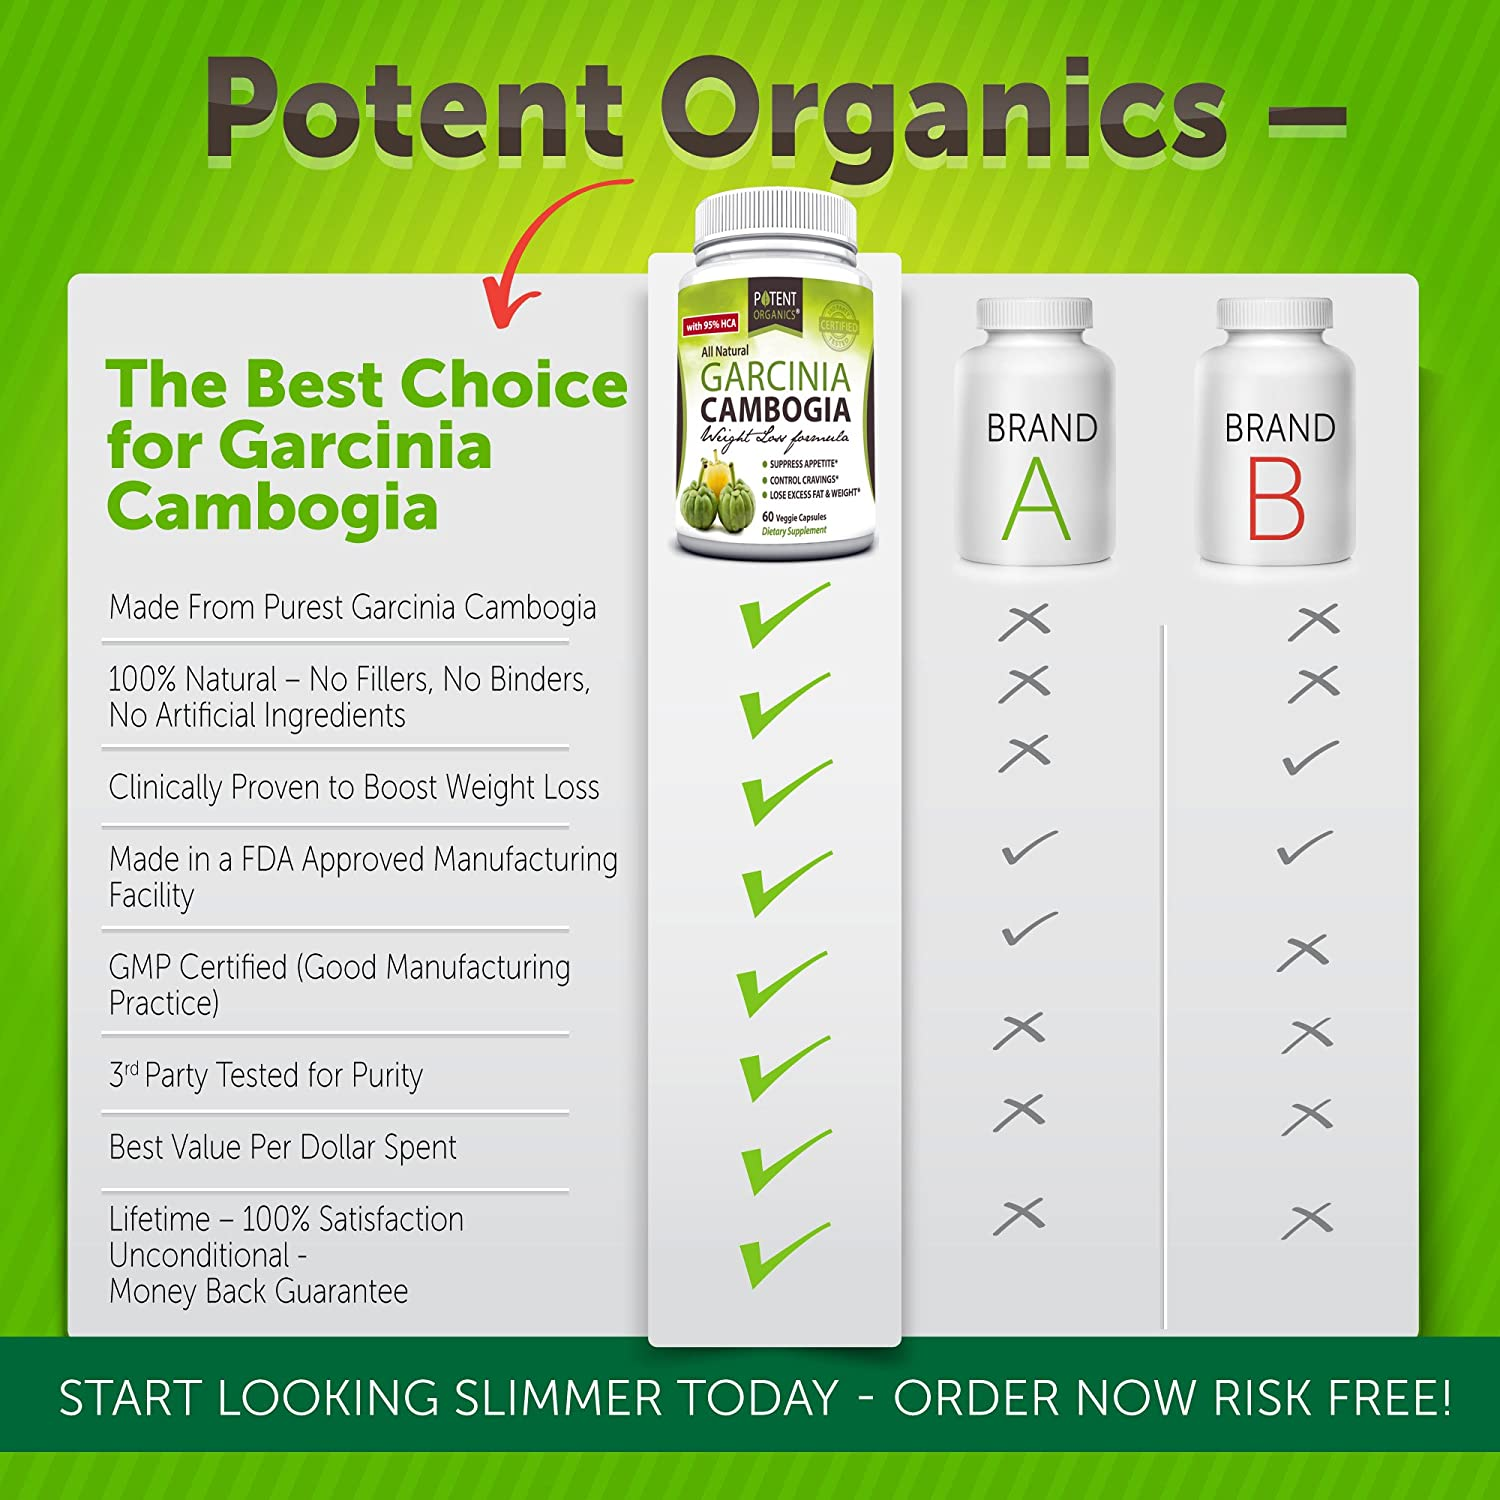 Between organic avenue cleanse weight loss are all getting